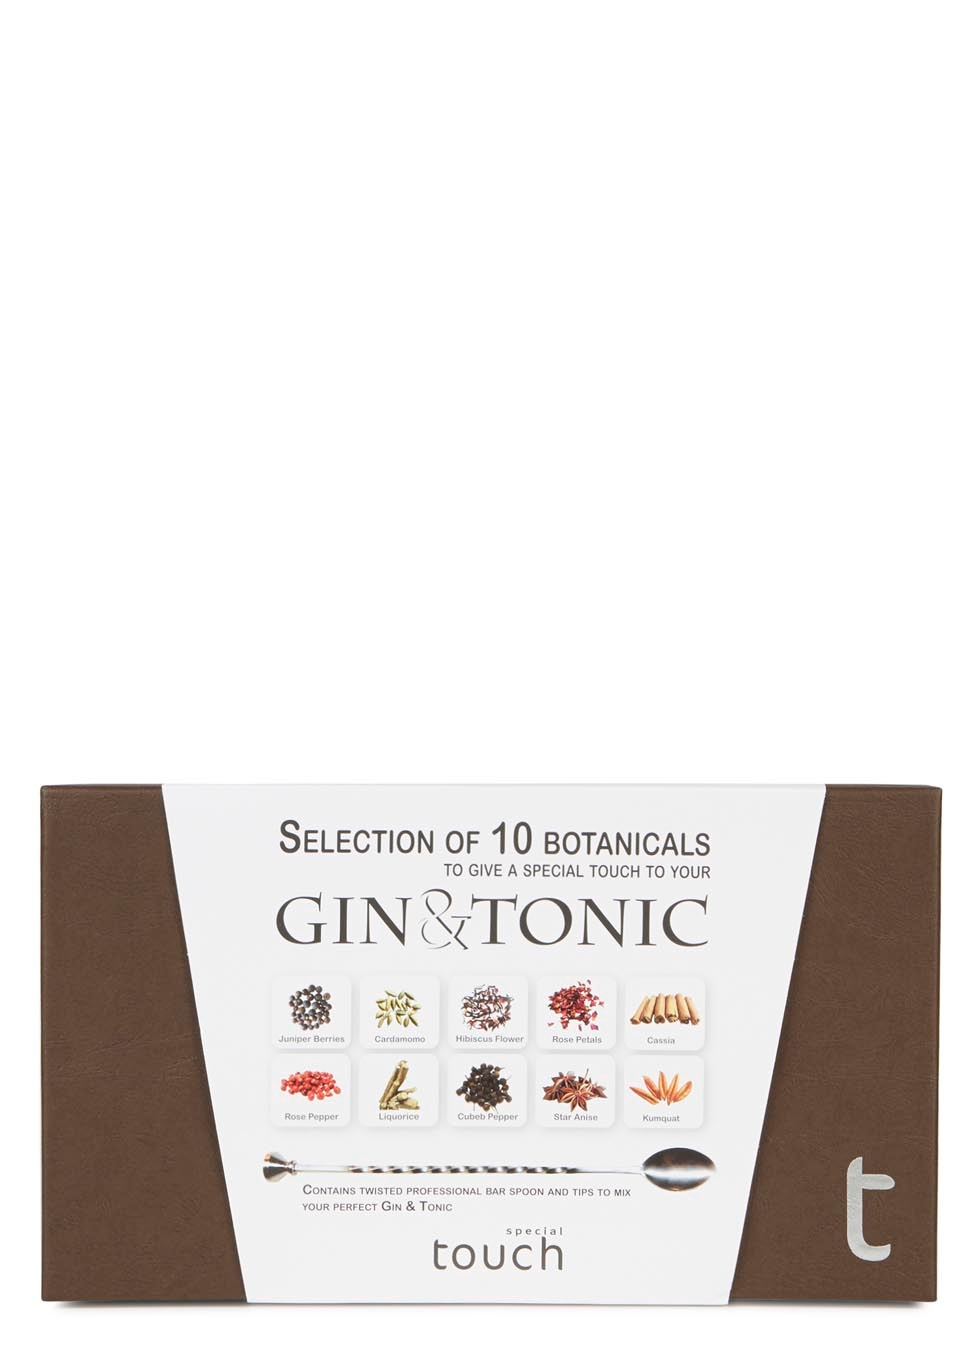 Botanicals For Gin & Tonic Set - Special Touch